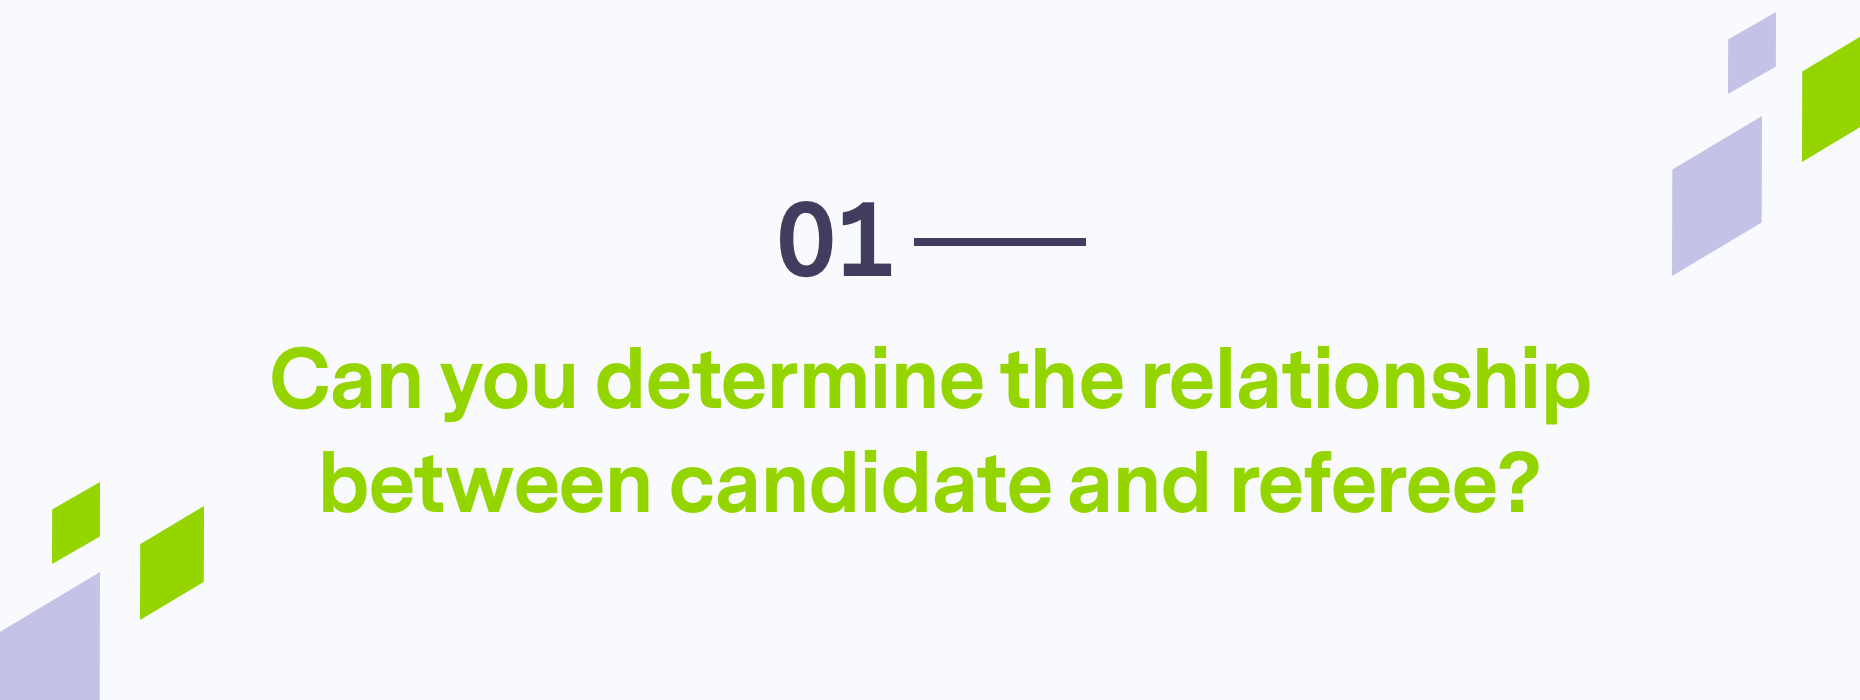 Branded question about candidate and referee relationship